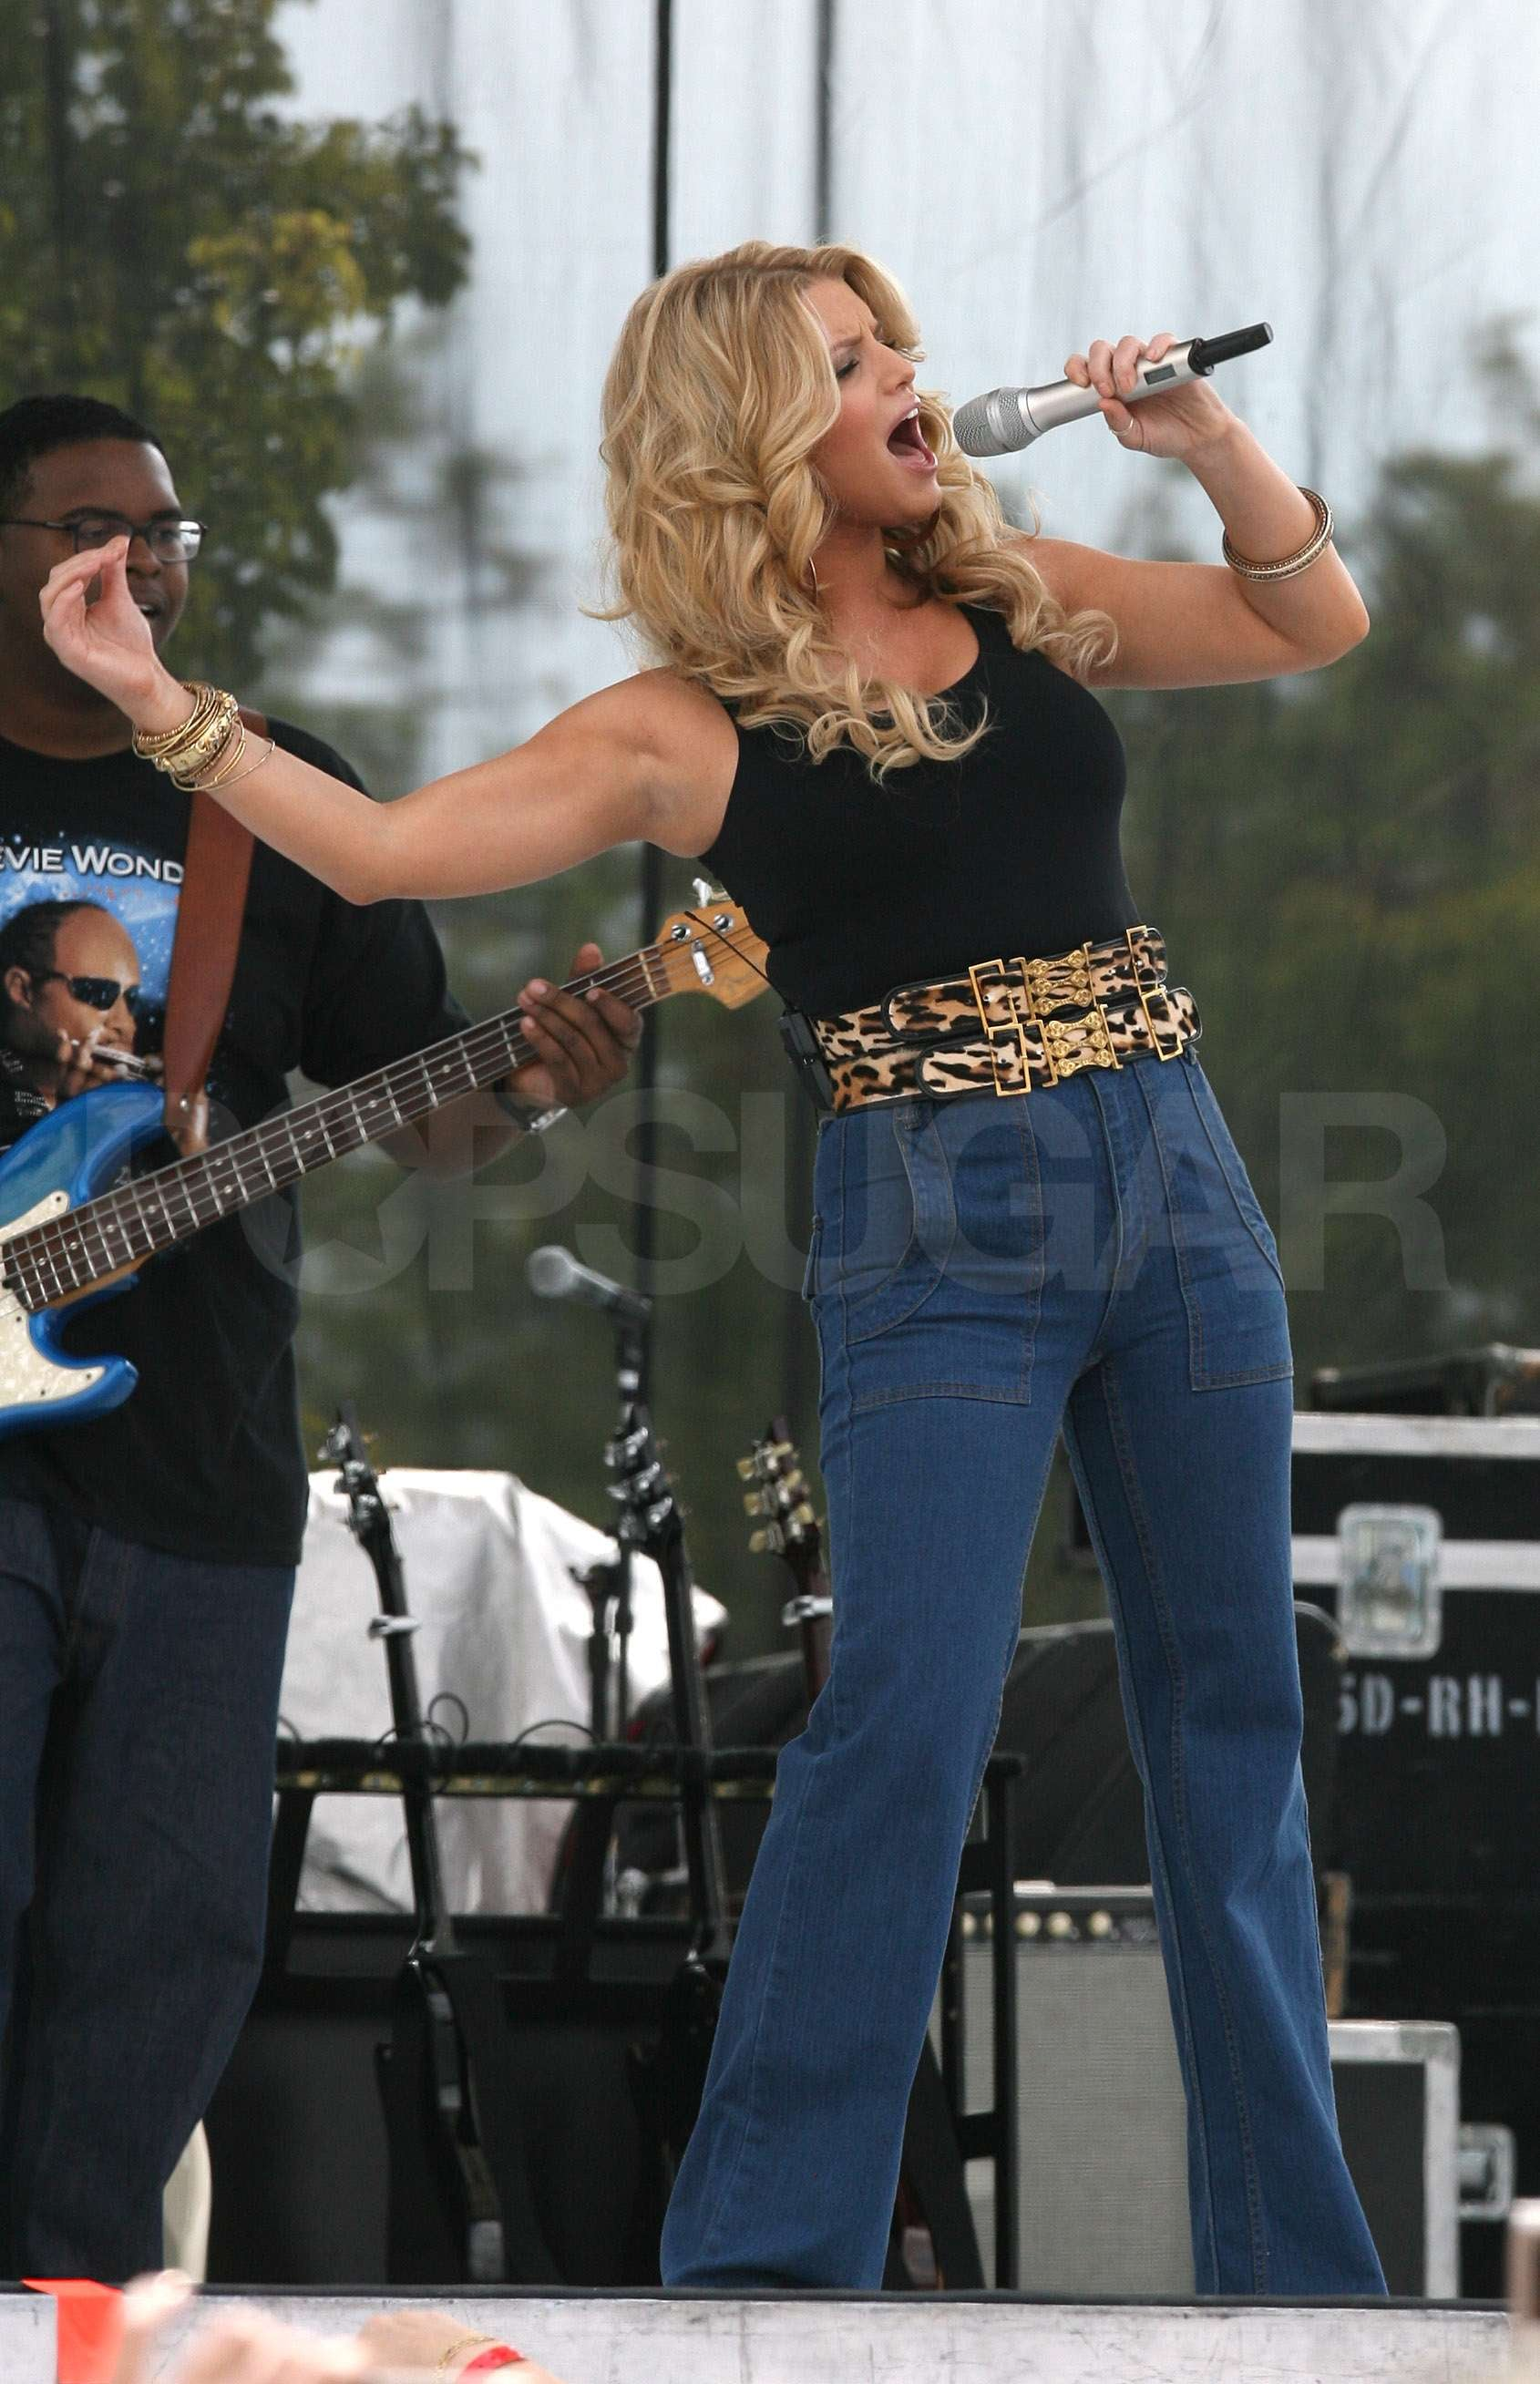 Dallas Auto Show >> Jessica Simpson Hikes Up Her Jeans and Sings For Chili | POPSUGAR Celebrity